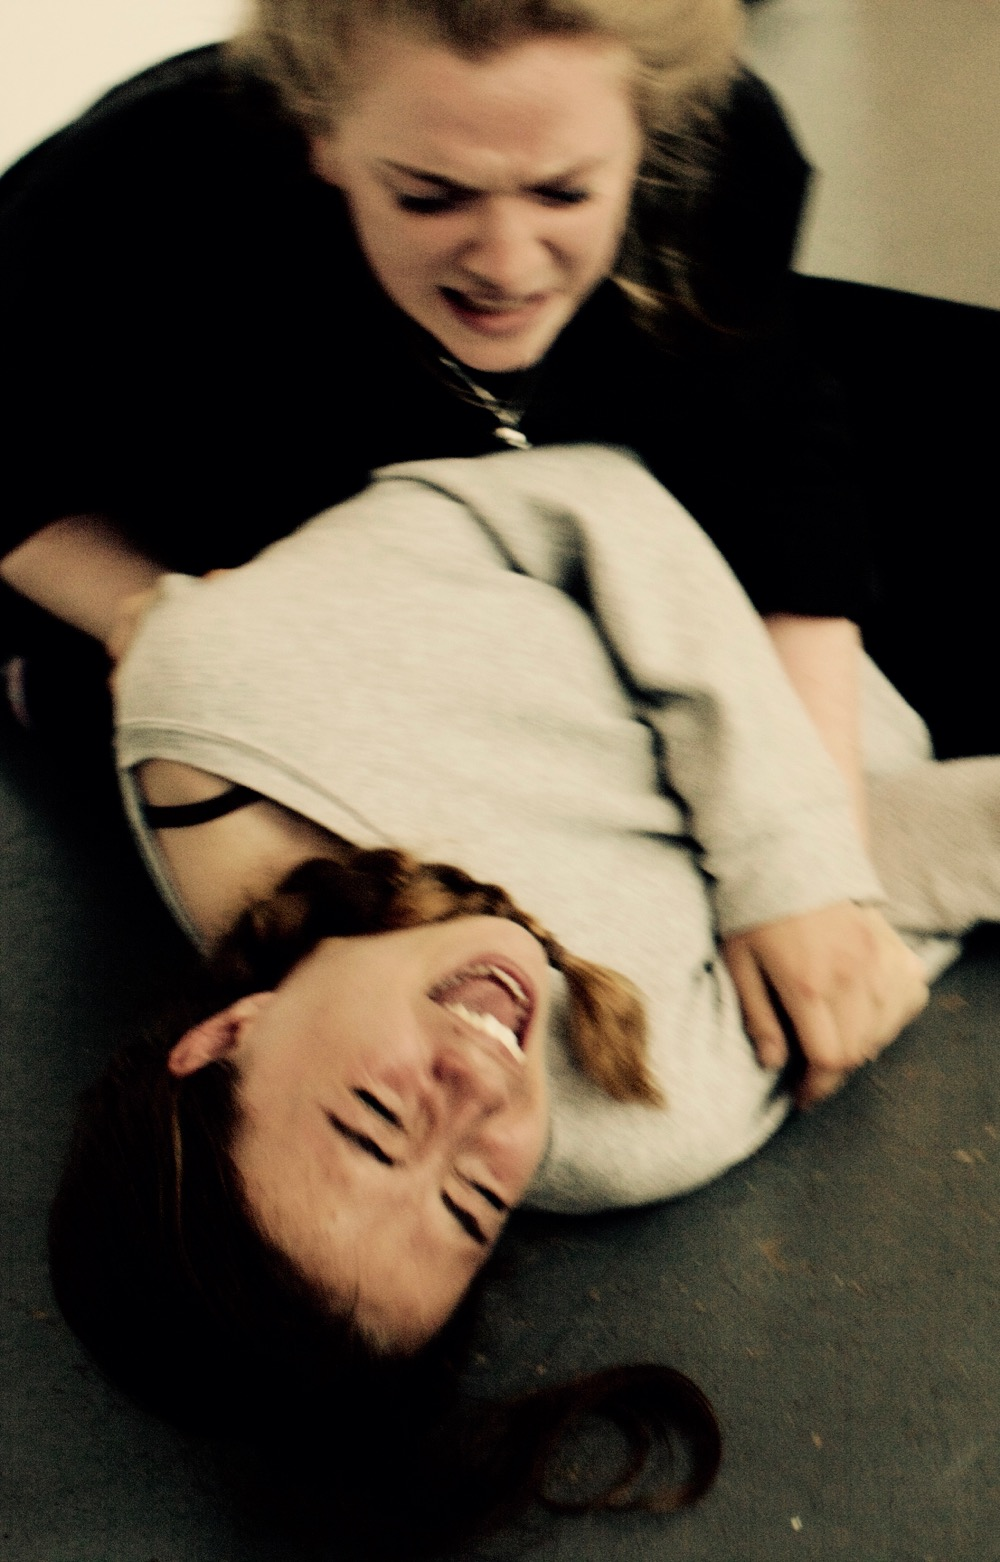 Lucy Standen and Rhiannon Locke in Rehersal at the Red Brick Building Glastonbury.